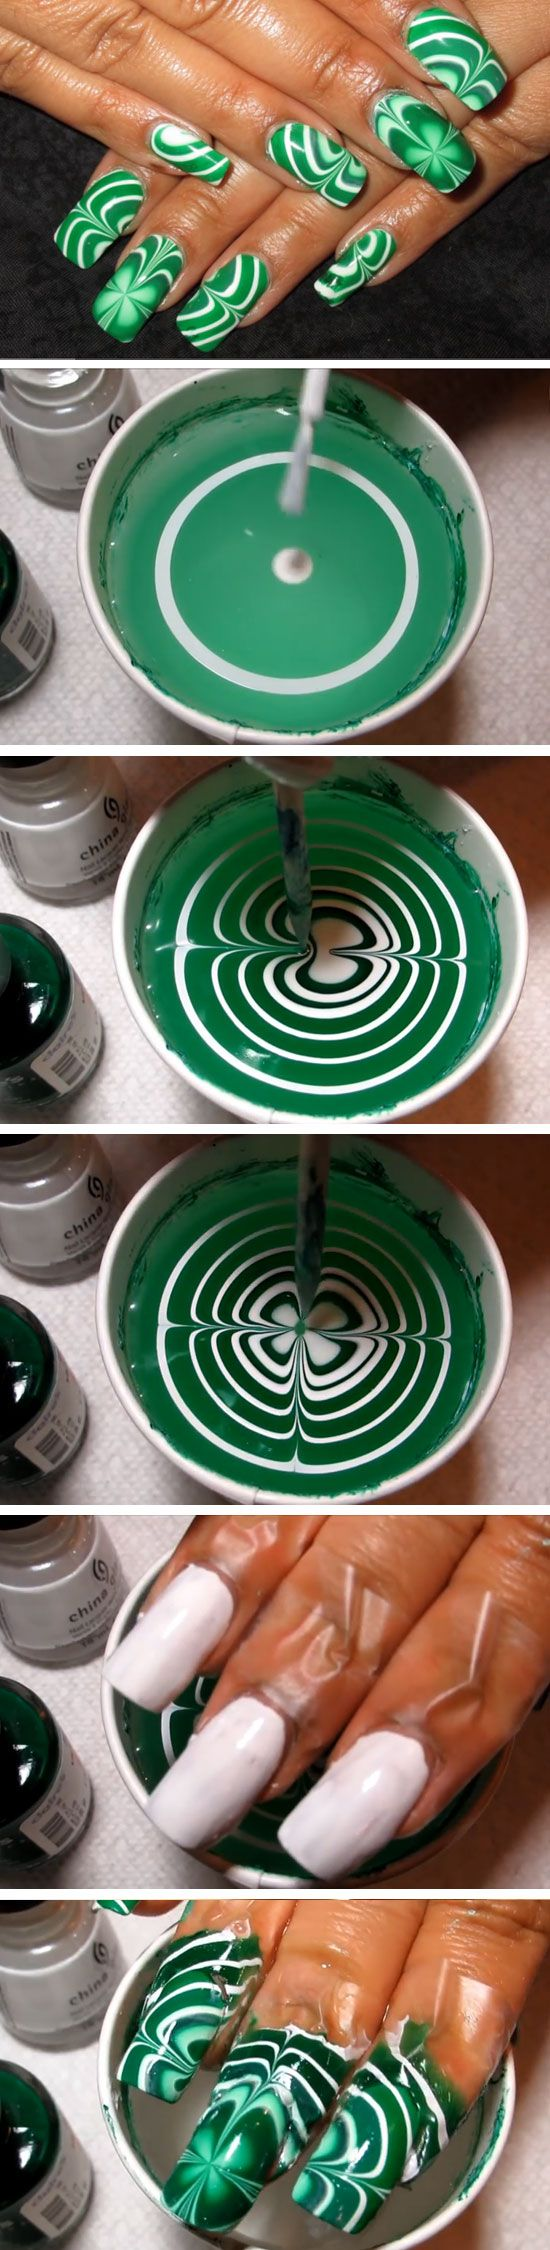 Water Marble Shamrocks | Click Pic for 19 Easy St Patricks Day Nail Designs | Easy Nail Art for Beginners Step by Step